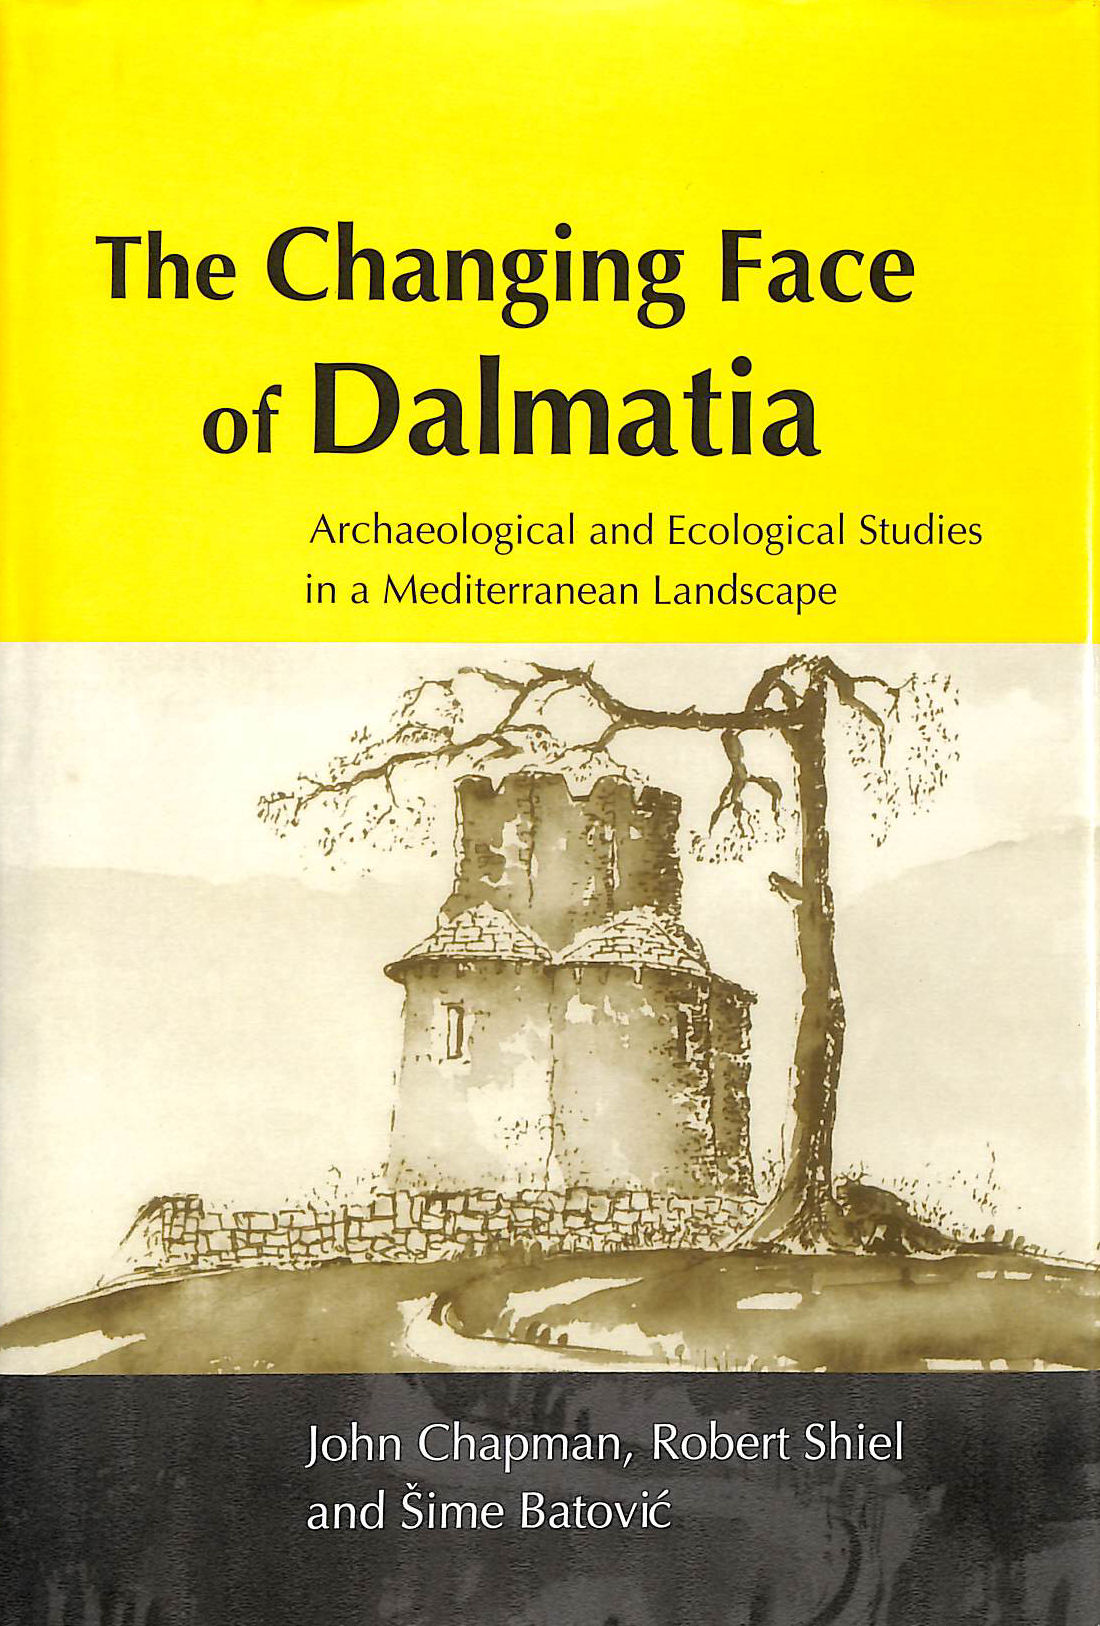 Image for The Changing Face of Dalmatia: Archaeological and Ecological Studies in a Mediterranean Landscape (Reports of the Research Committee of the Society of Antiquaries of London)